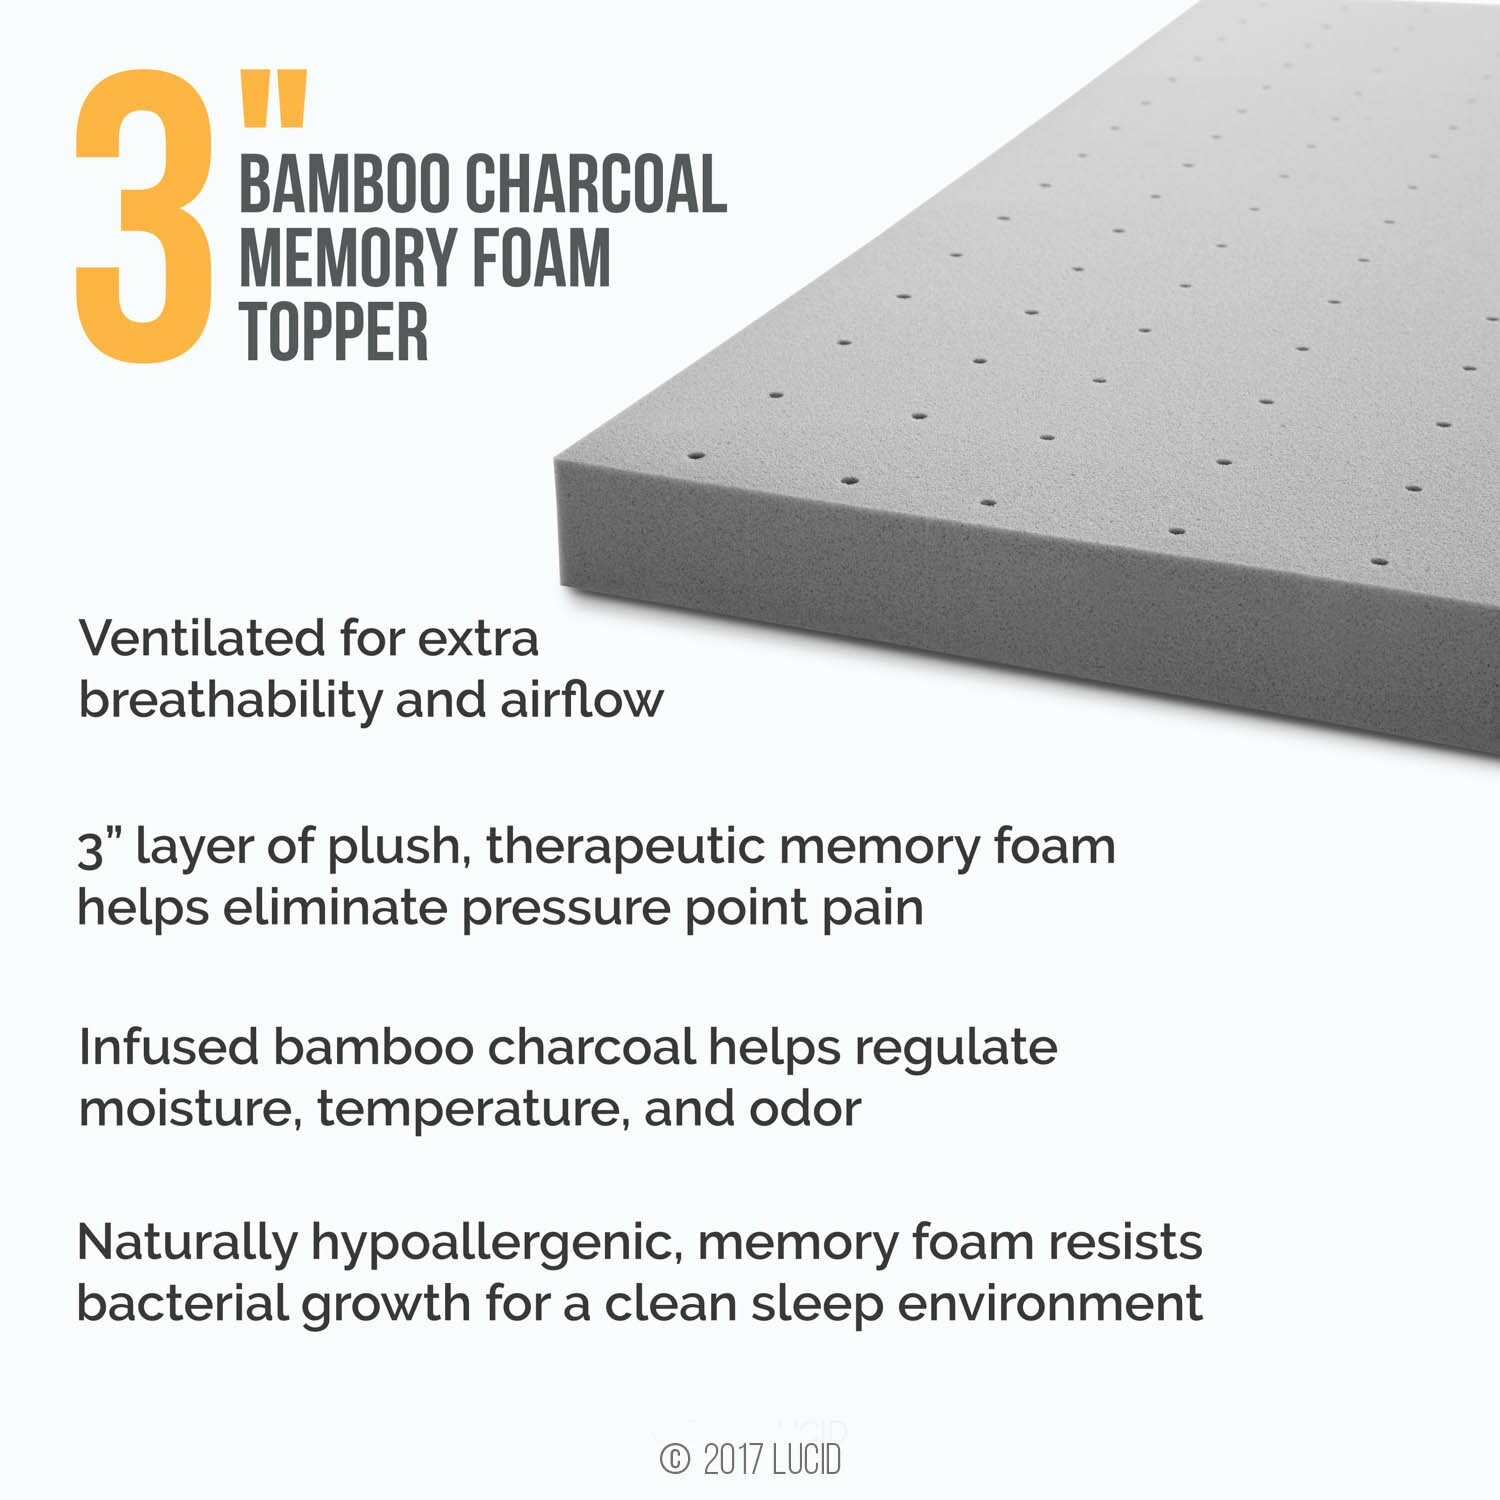 lucid 3 bamboo charcoal memory foam mattress topper. Black Bedroom Furniture Sets. Home Design Ideas